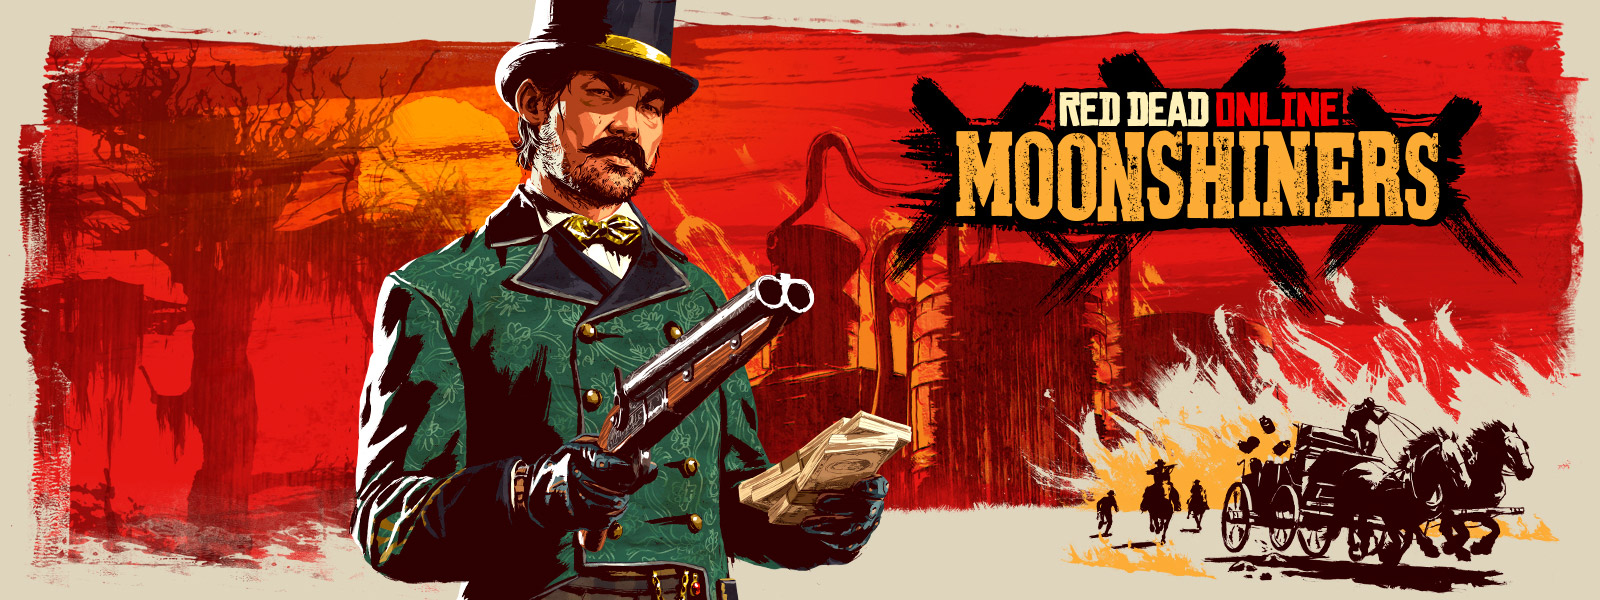 Red Dead Online, Moonshiners, A sinister looking man holds a gun and a stack of cash, stylistic background of a moonshiner set-up and a wagon chase.